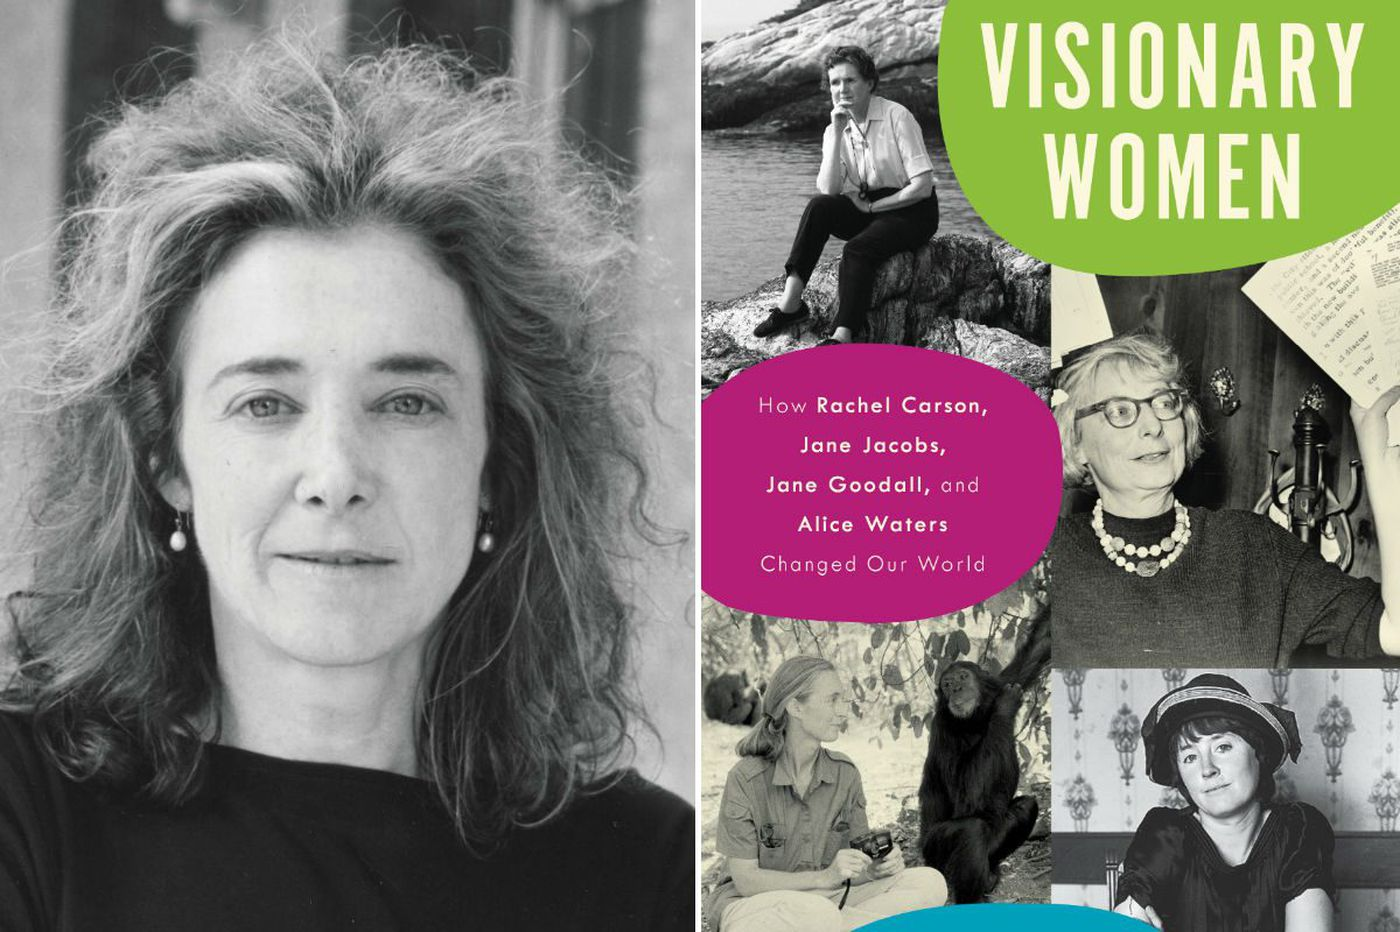 'Visionary Women' by Joanna Scutts: Four women who changed the world